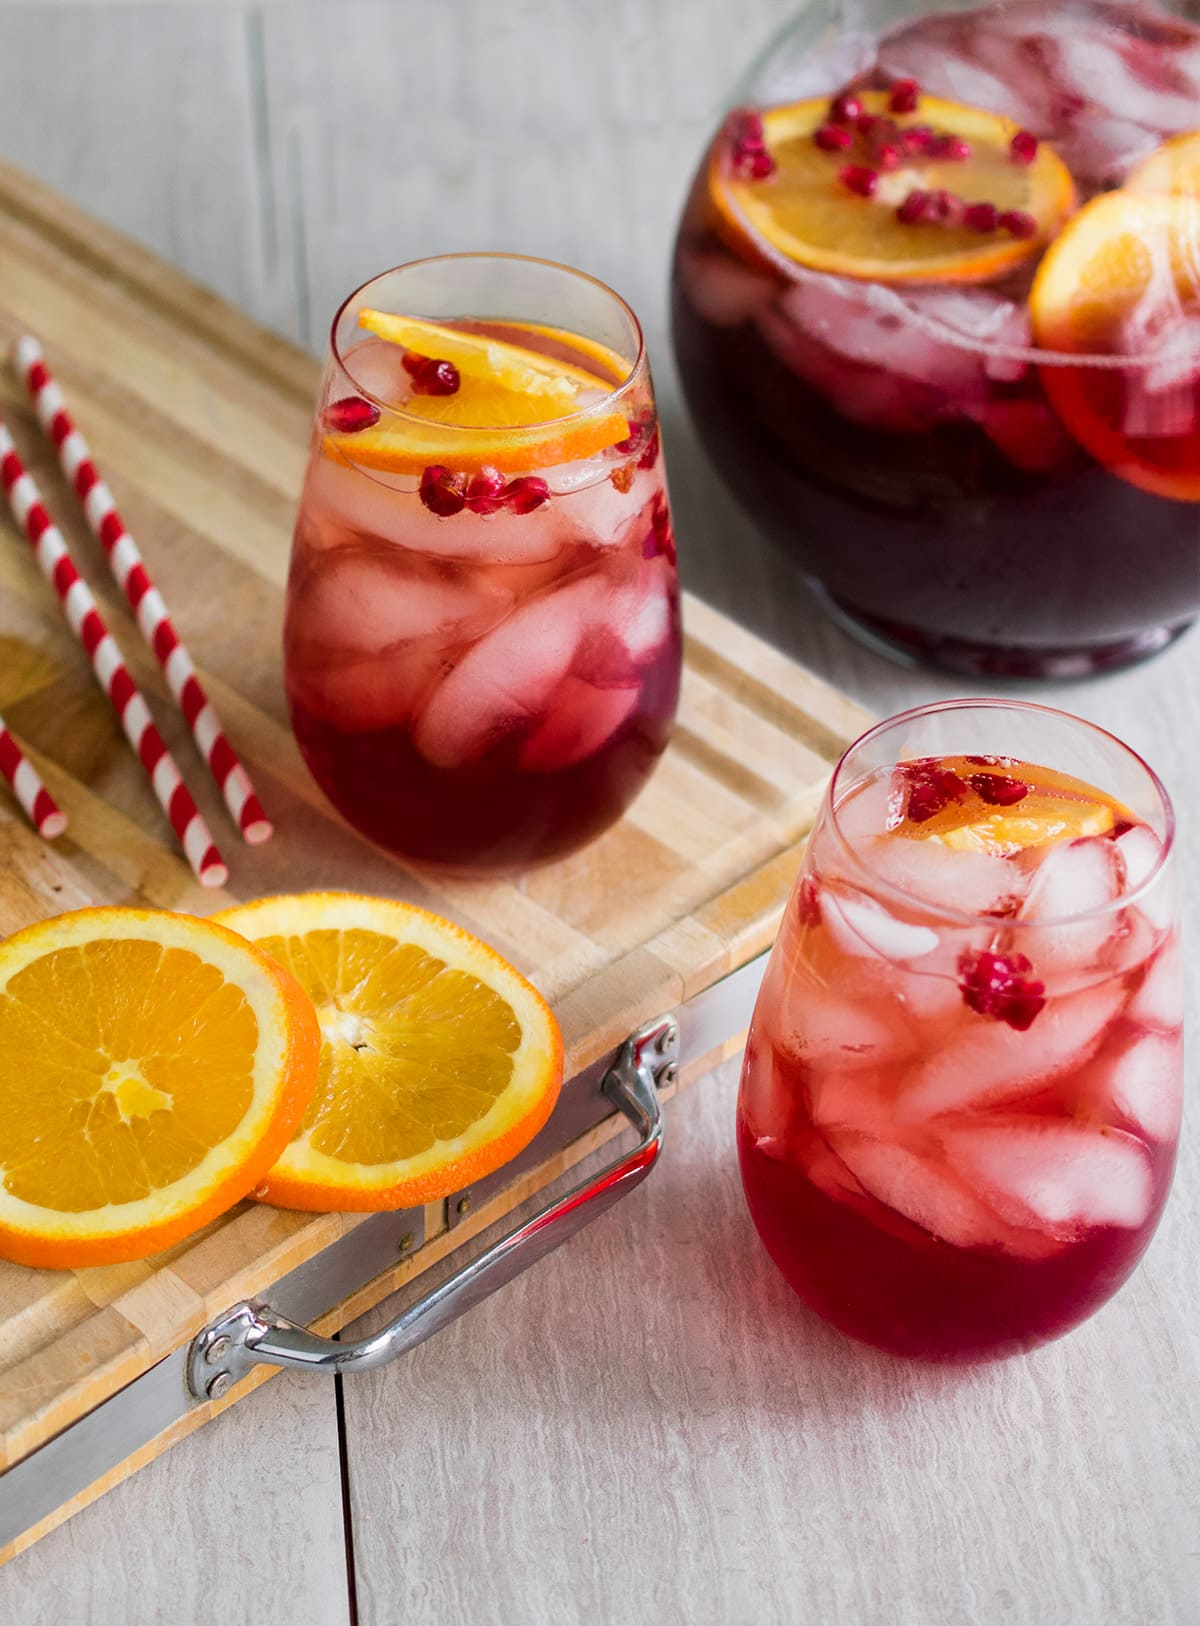 Holiday Punch recipes - Simple Christmas punch idea with alcoholic cocktail and nonalcoholic punch versions. This cocktail is loaded with cranberry, pomegranate, and citrus orange flavors, and then topped with a little fun fizz, it is sure to be a favorite at your holiday party.